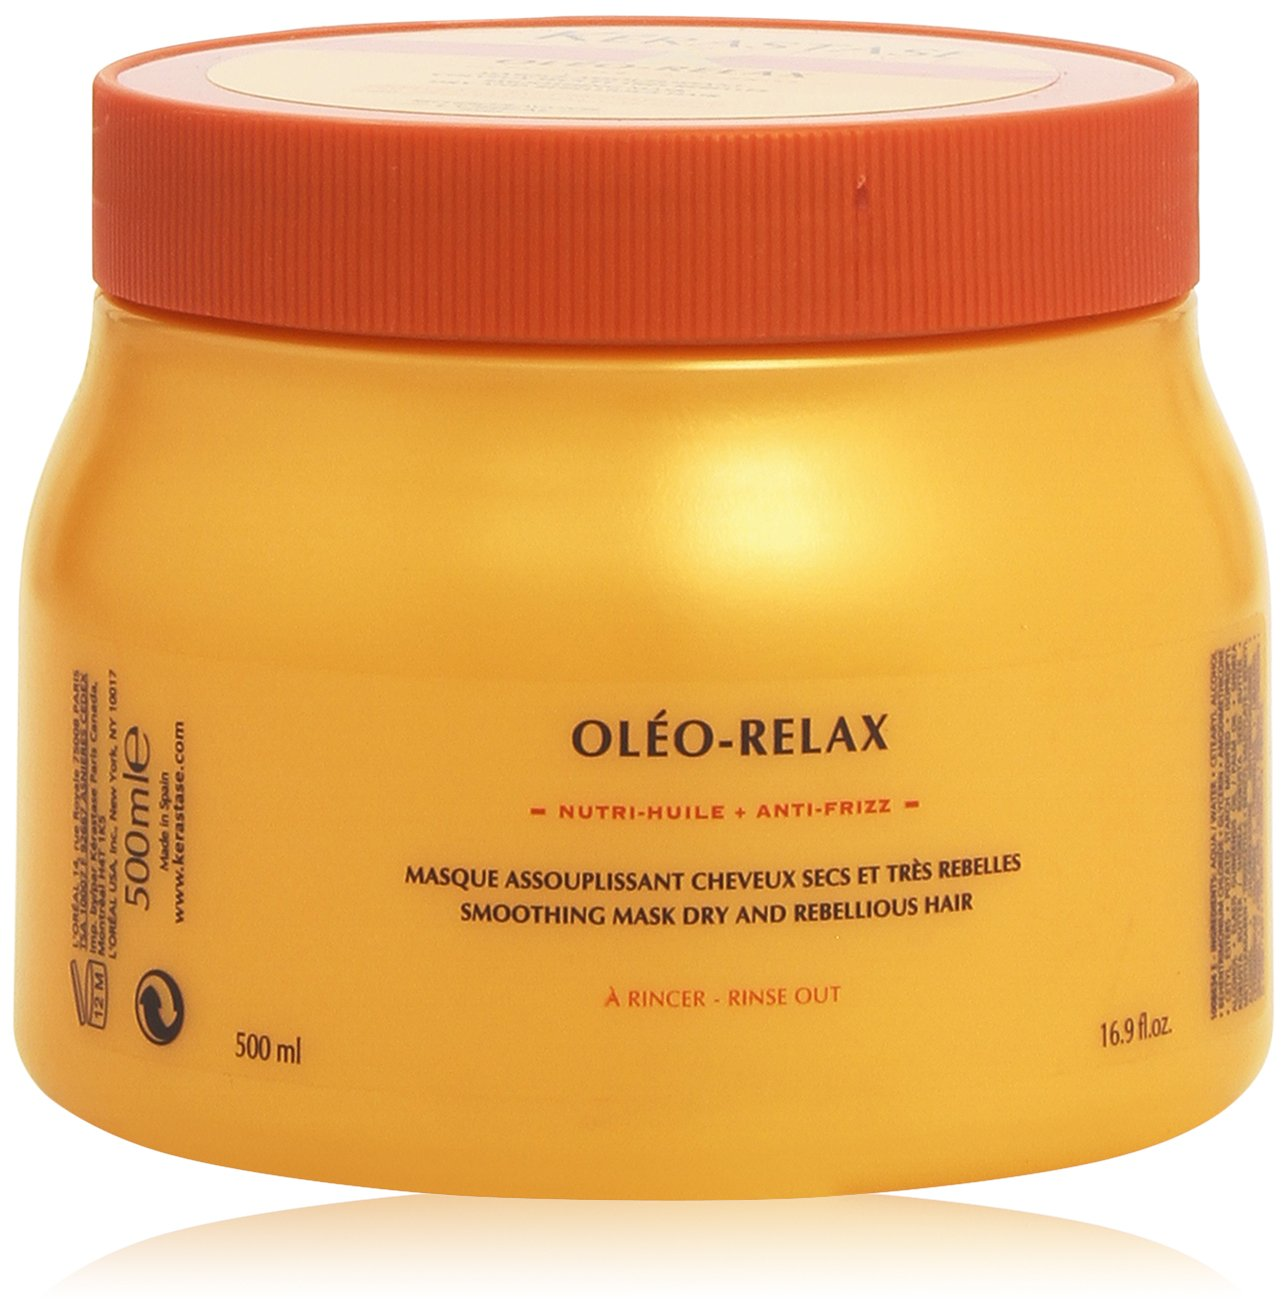 Nutritive Oleo Relax Masque Unisex Hair Mask by Kerastase, 16.9-Ounce